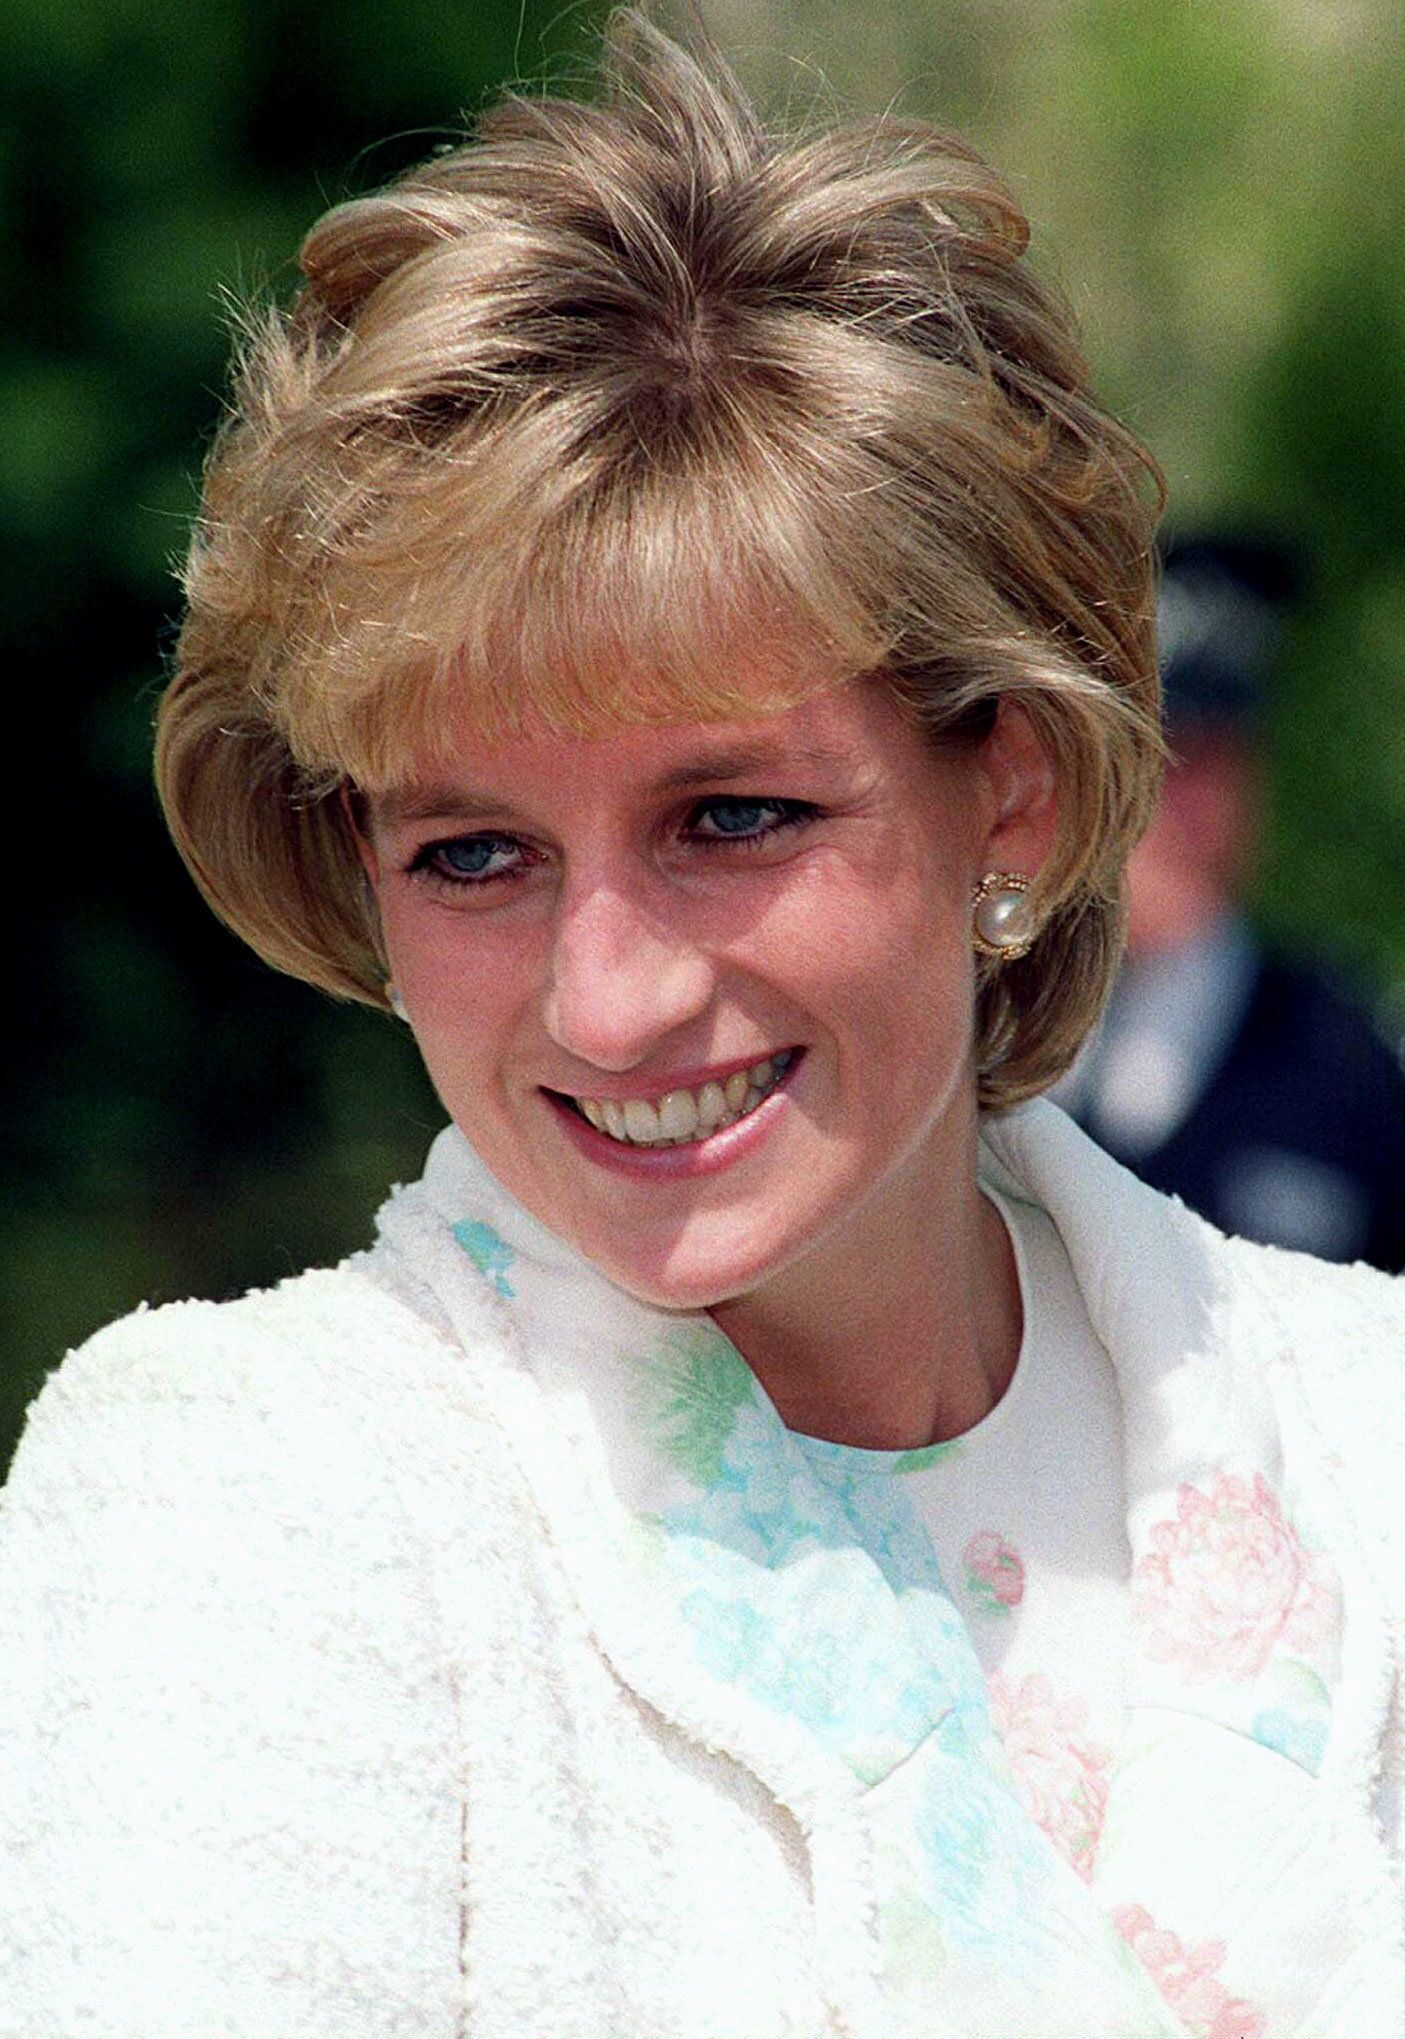 Diana Princess of Wales, Royal Patron for the International Spinal Research Trust (ISRT) meets PUSH 2000 athletes at Kensington Palace May 13. The charity was launching their biggest ever fundraiser, PUSH 2000, a wheelchair push from Land's End to John O'Groats